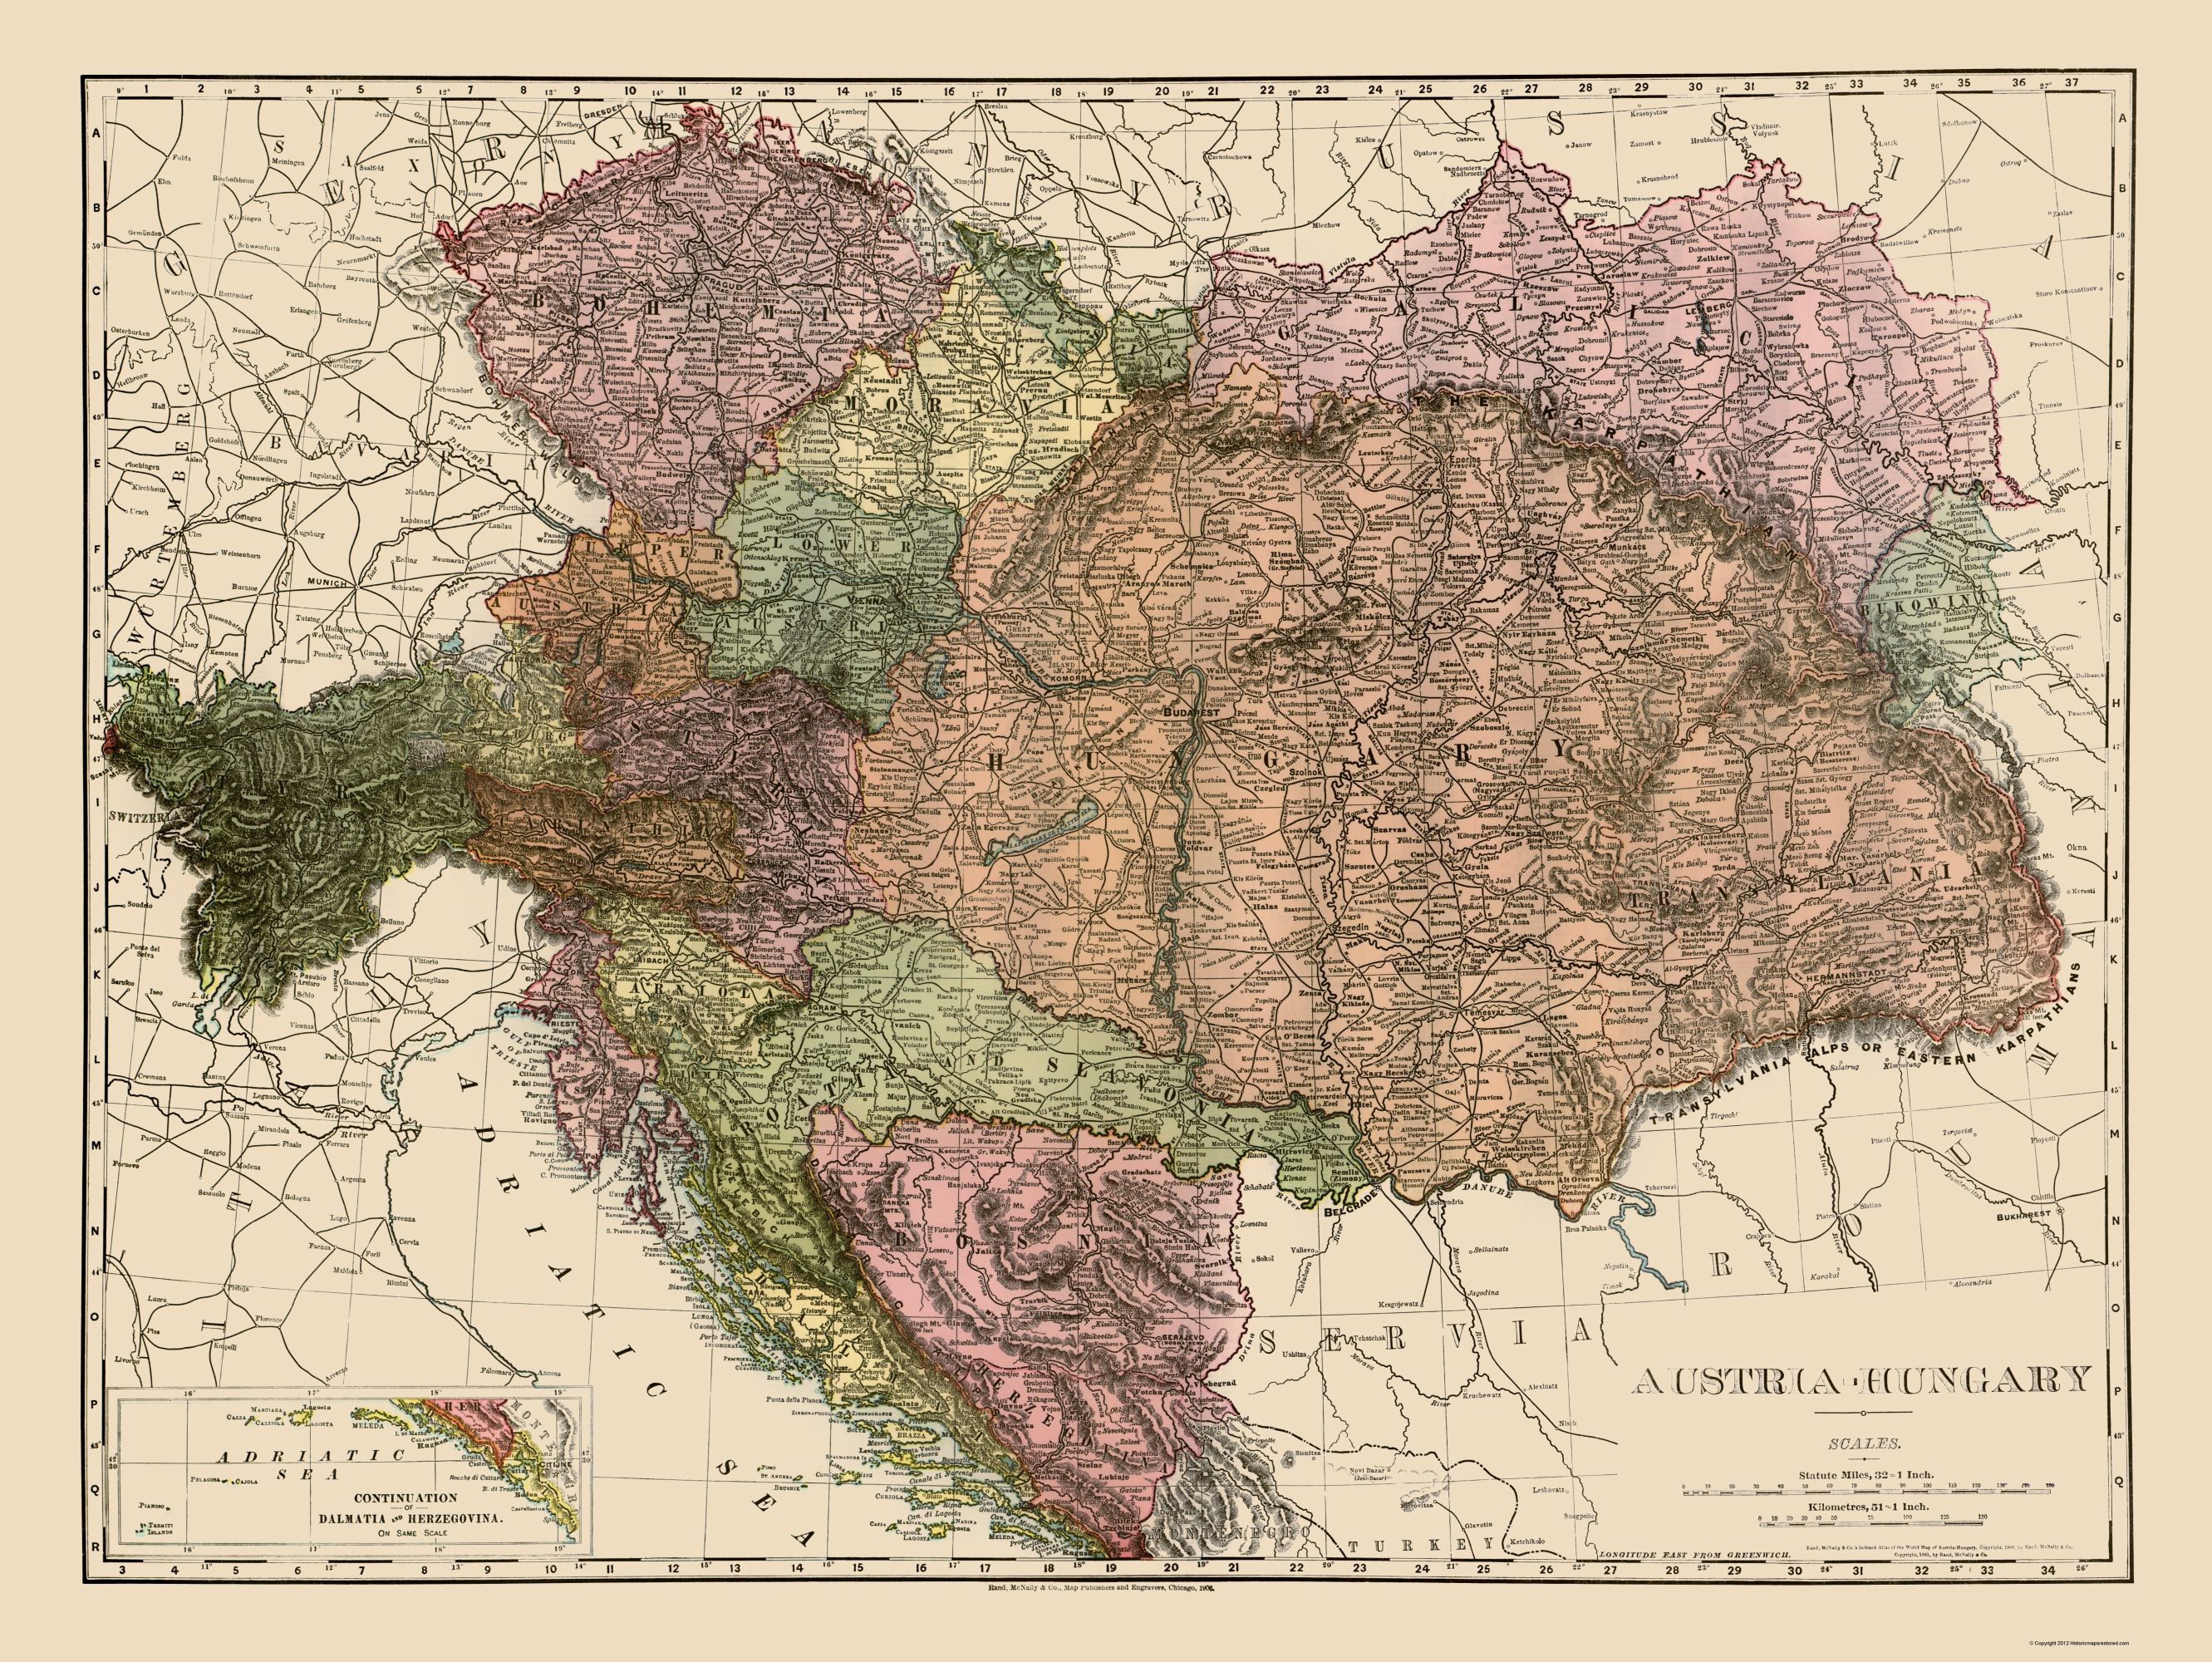 austria-hungary map